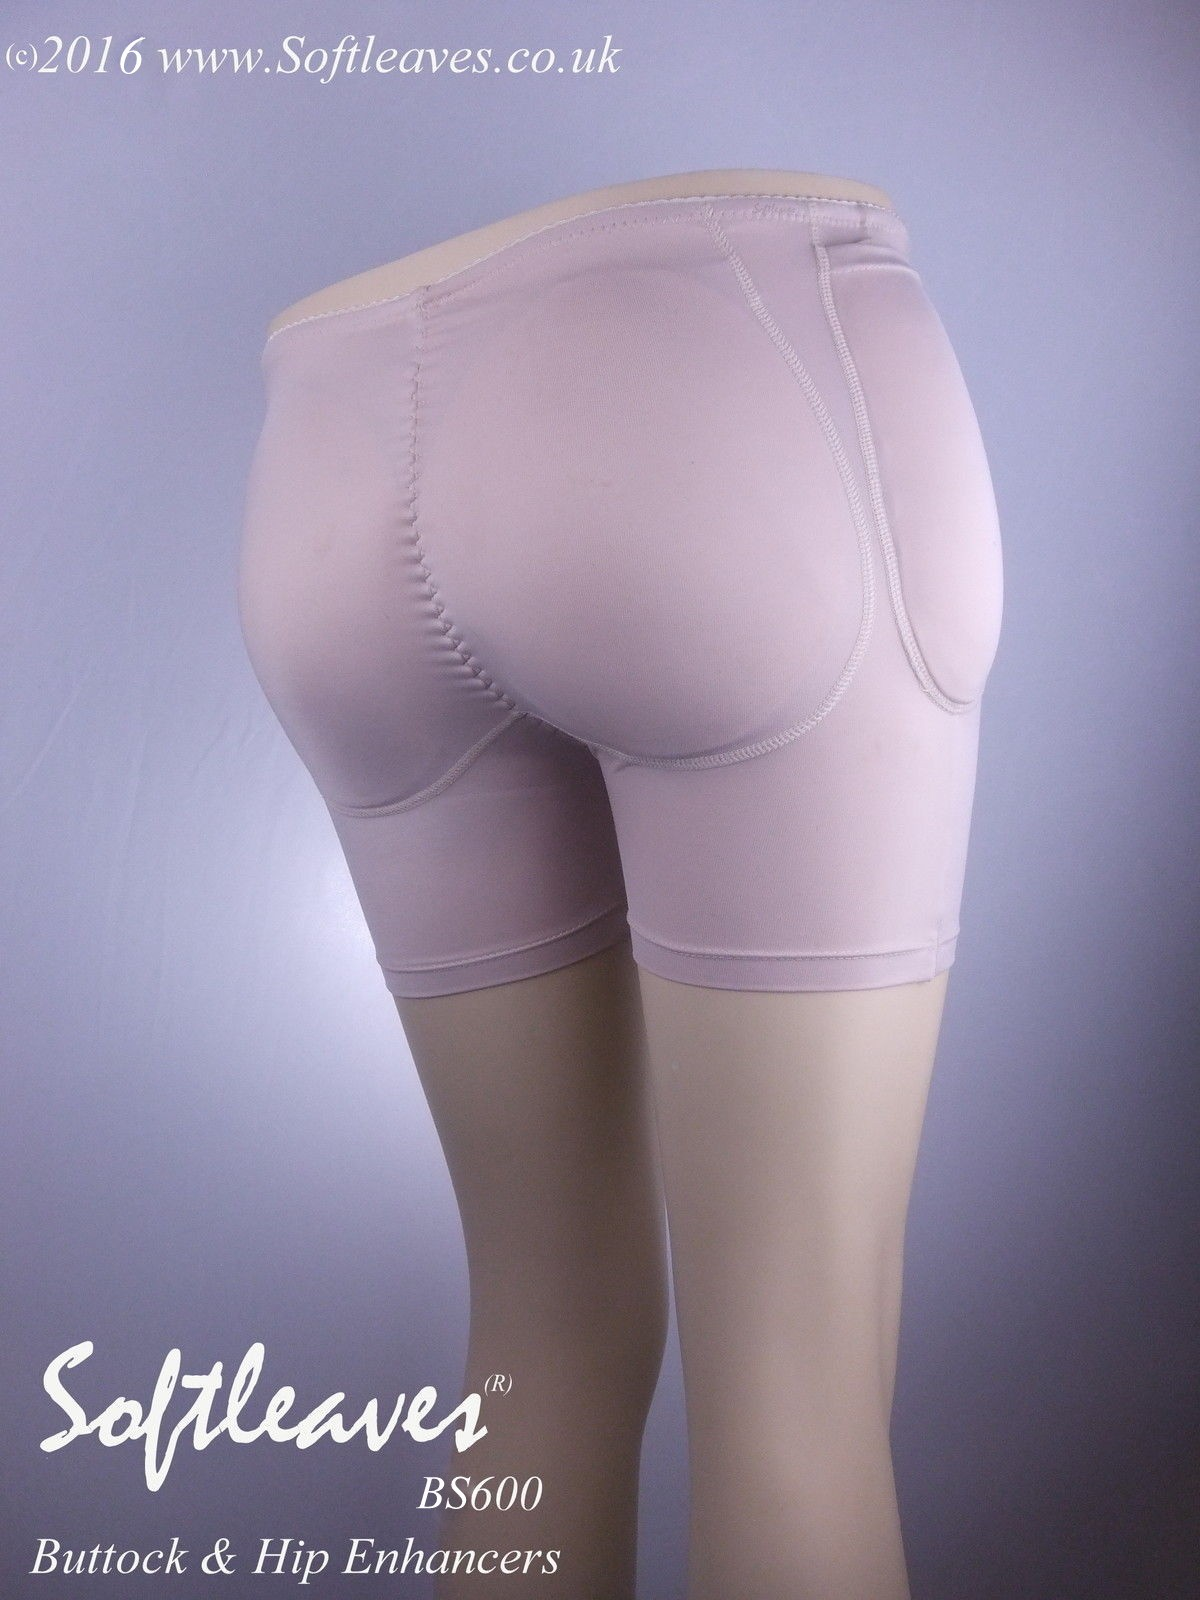 e48d317345 Softleaves BS600 Silicone Buttocks and Hip Enhancers Padded Panties and  Pants